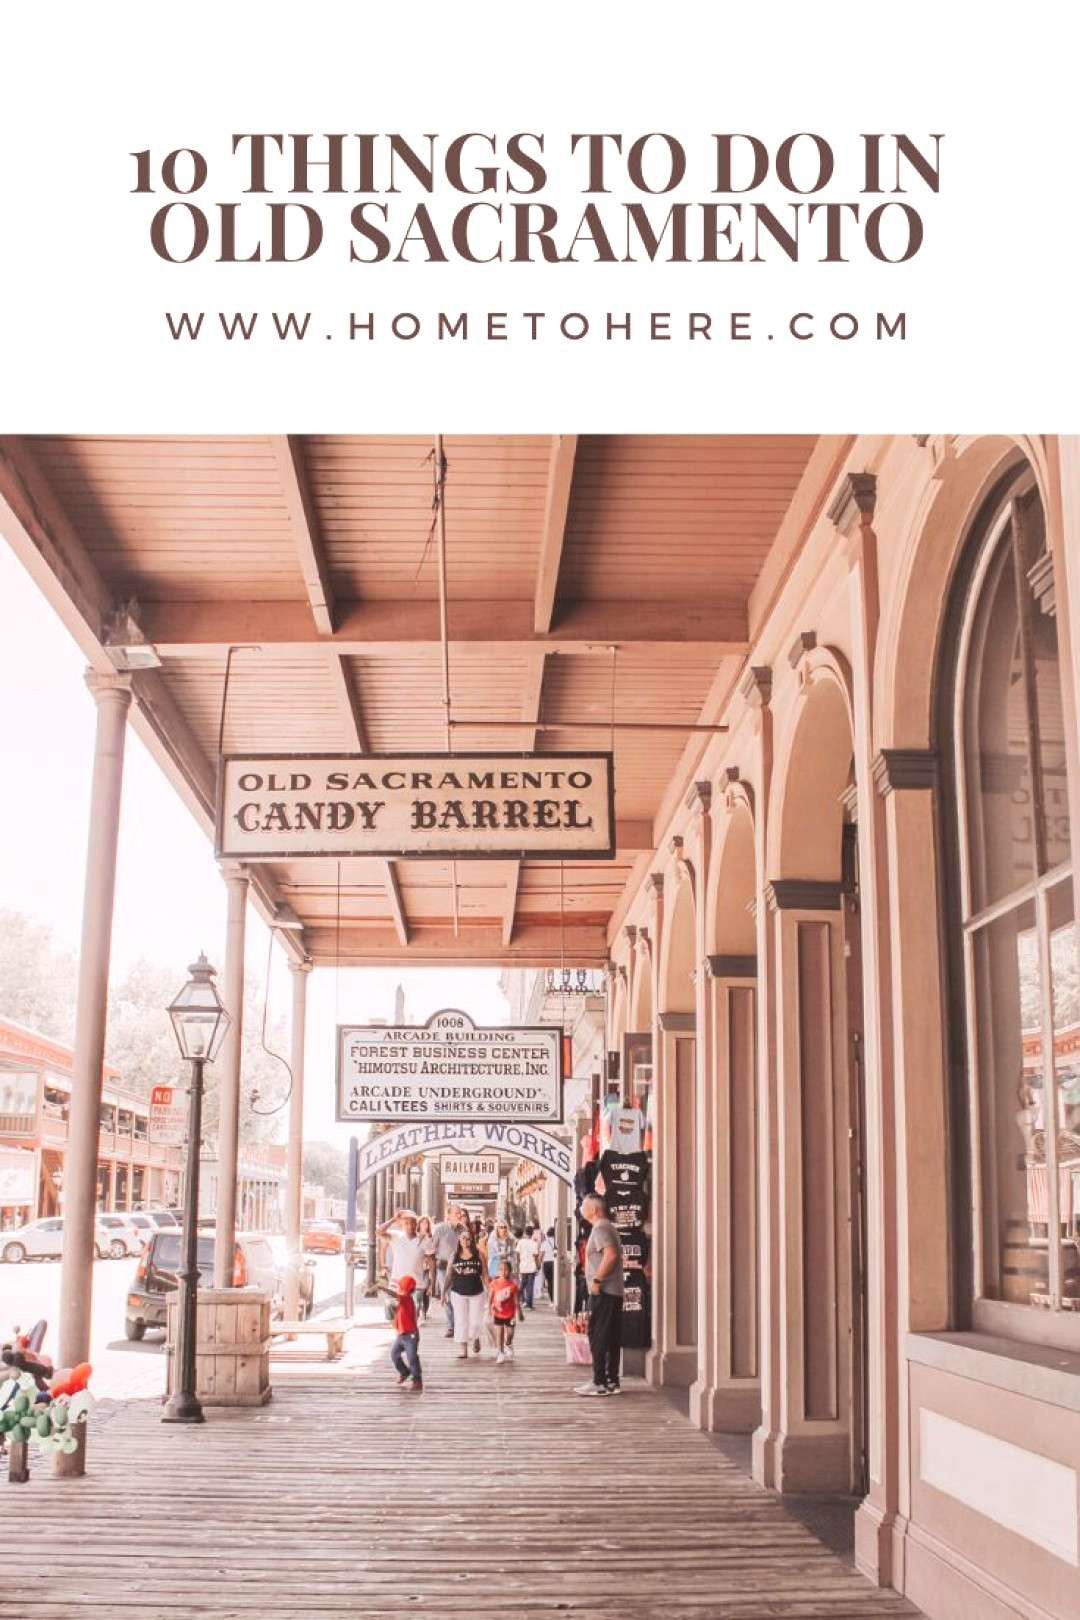 10 Things to do in Old Sacramento You probably never have THOUGHT about having on your itinerary, b